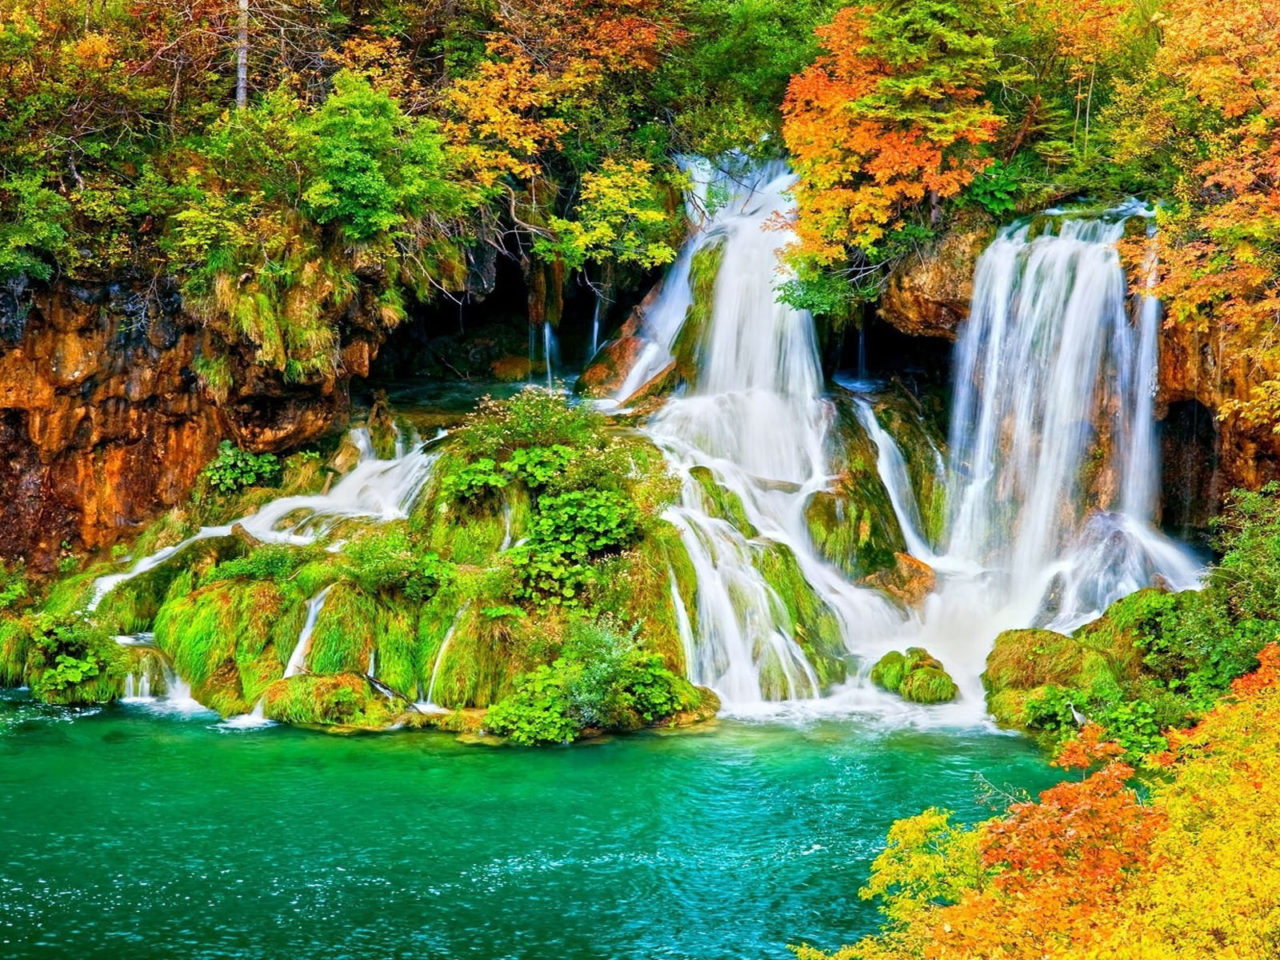 Waterfalls Desktop Wallpaper Forest Falls Autumn Waterfall Forest Trees Shrubs With Yellow And Red